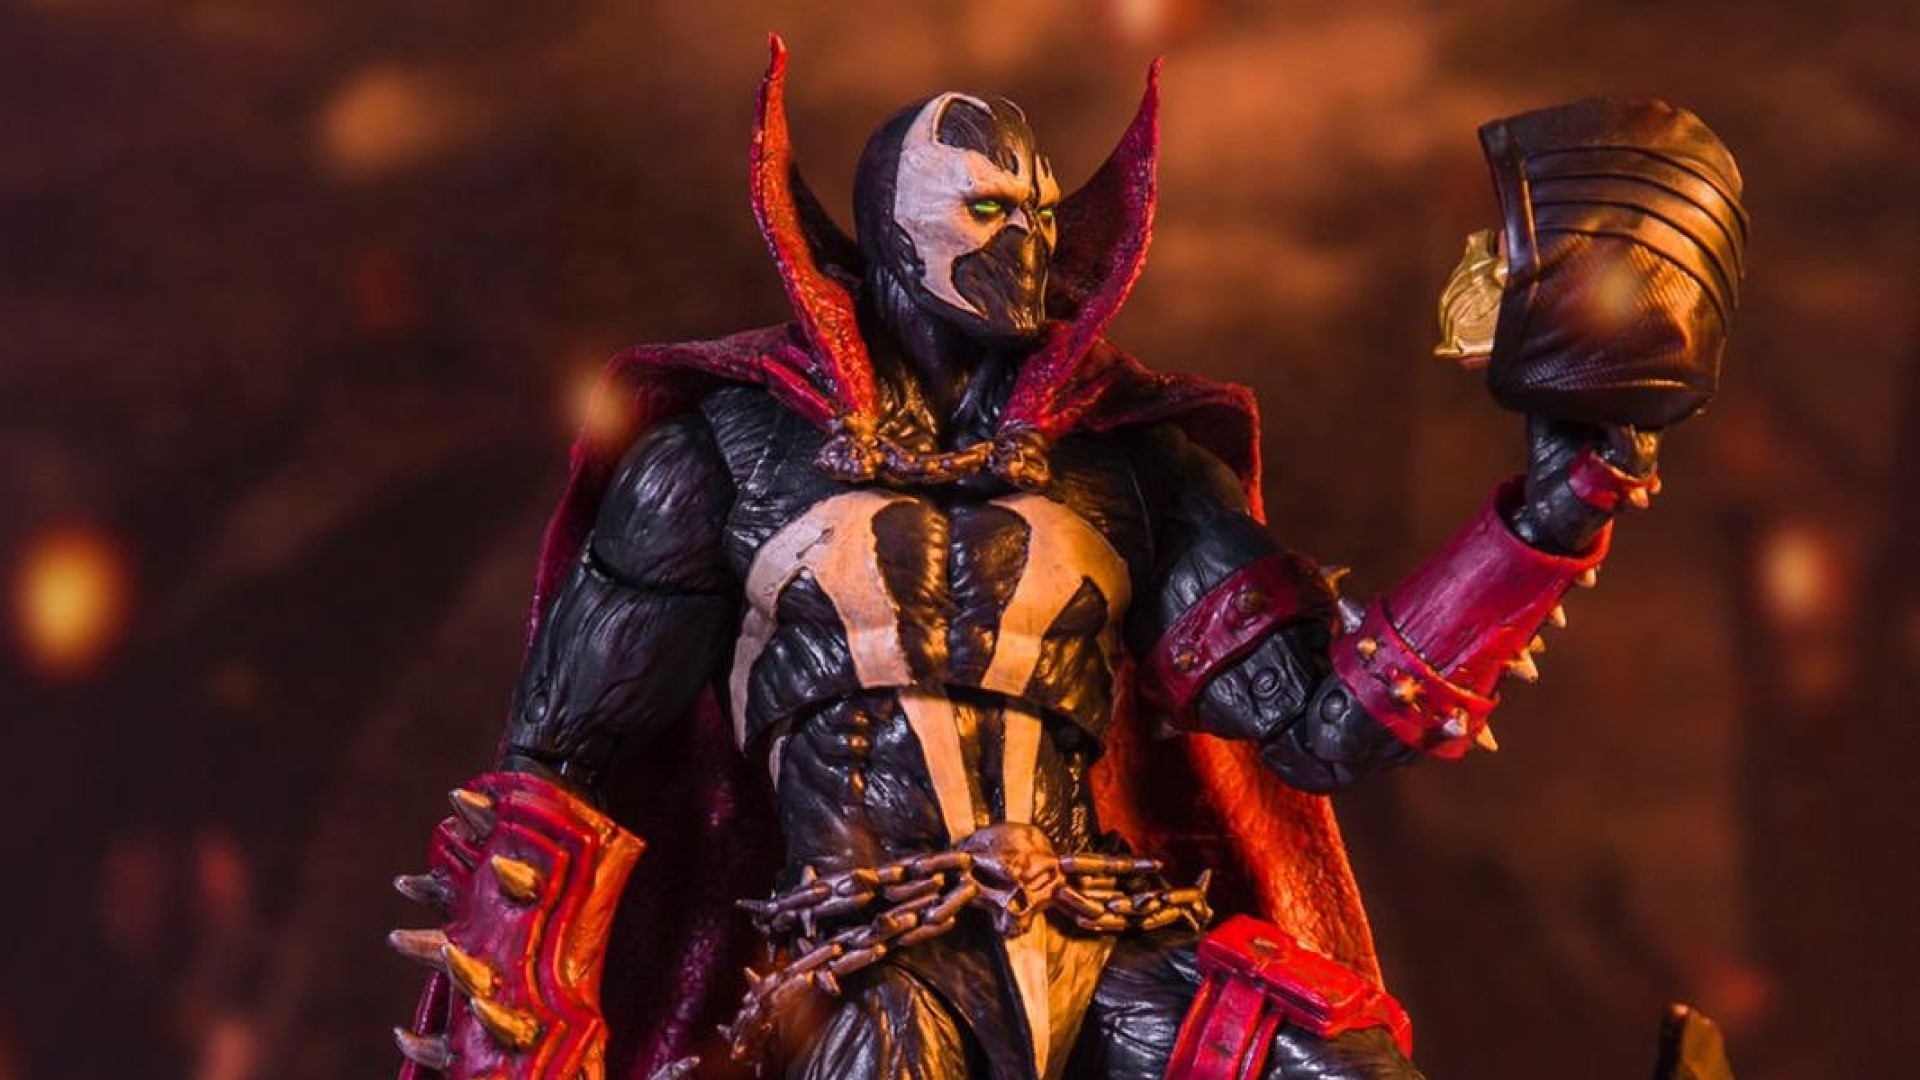 spawn featured - TODD MCFARLANE REVEALS NEW SPAWN ACTION FIGURE FOR MK11 CHARACTER DEBUT